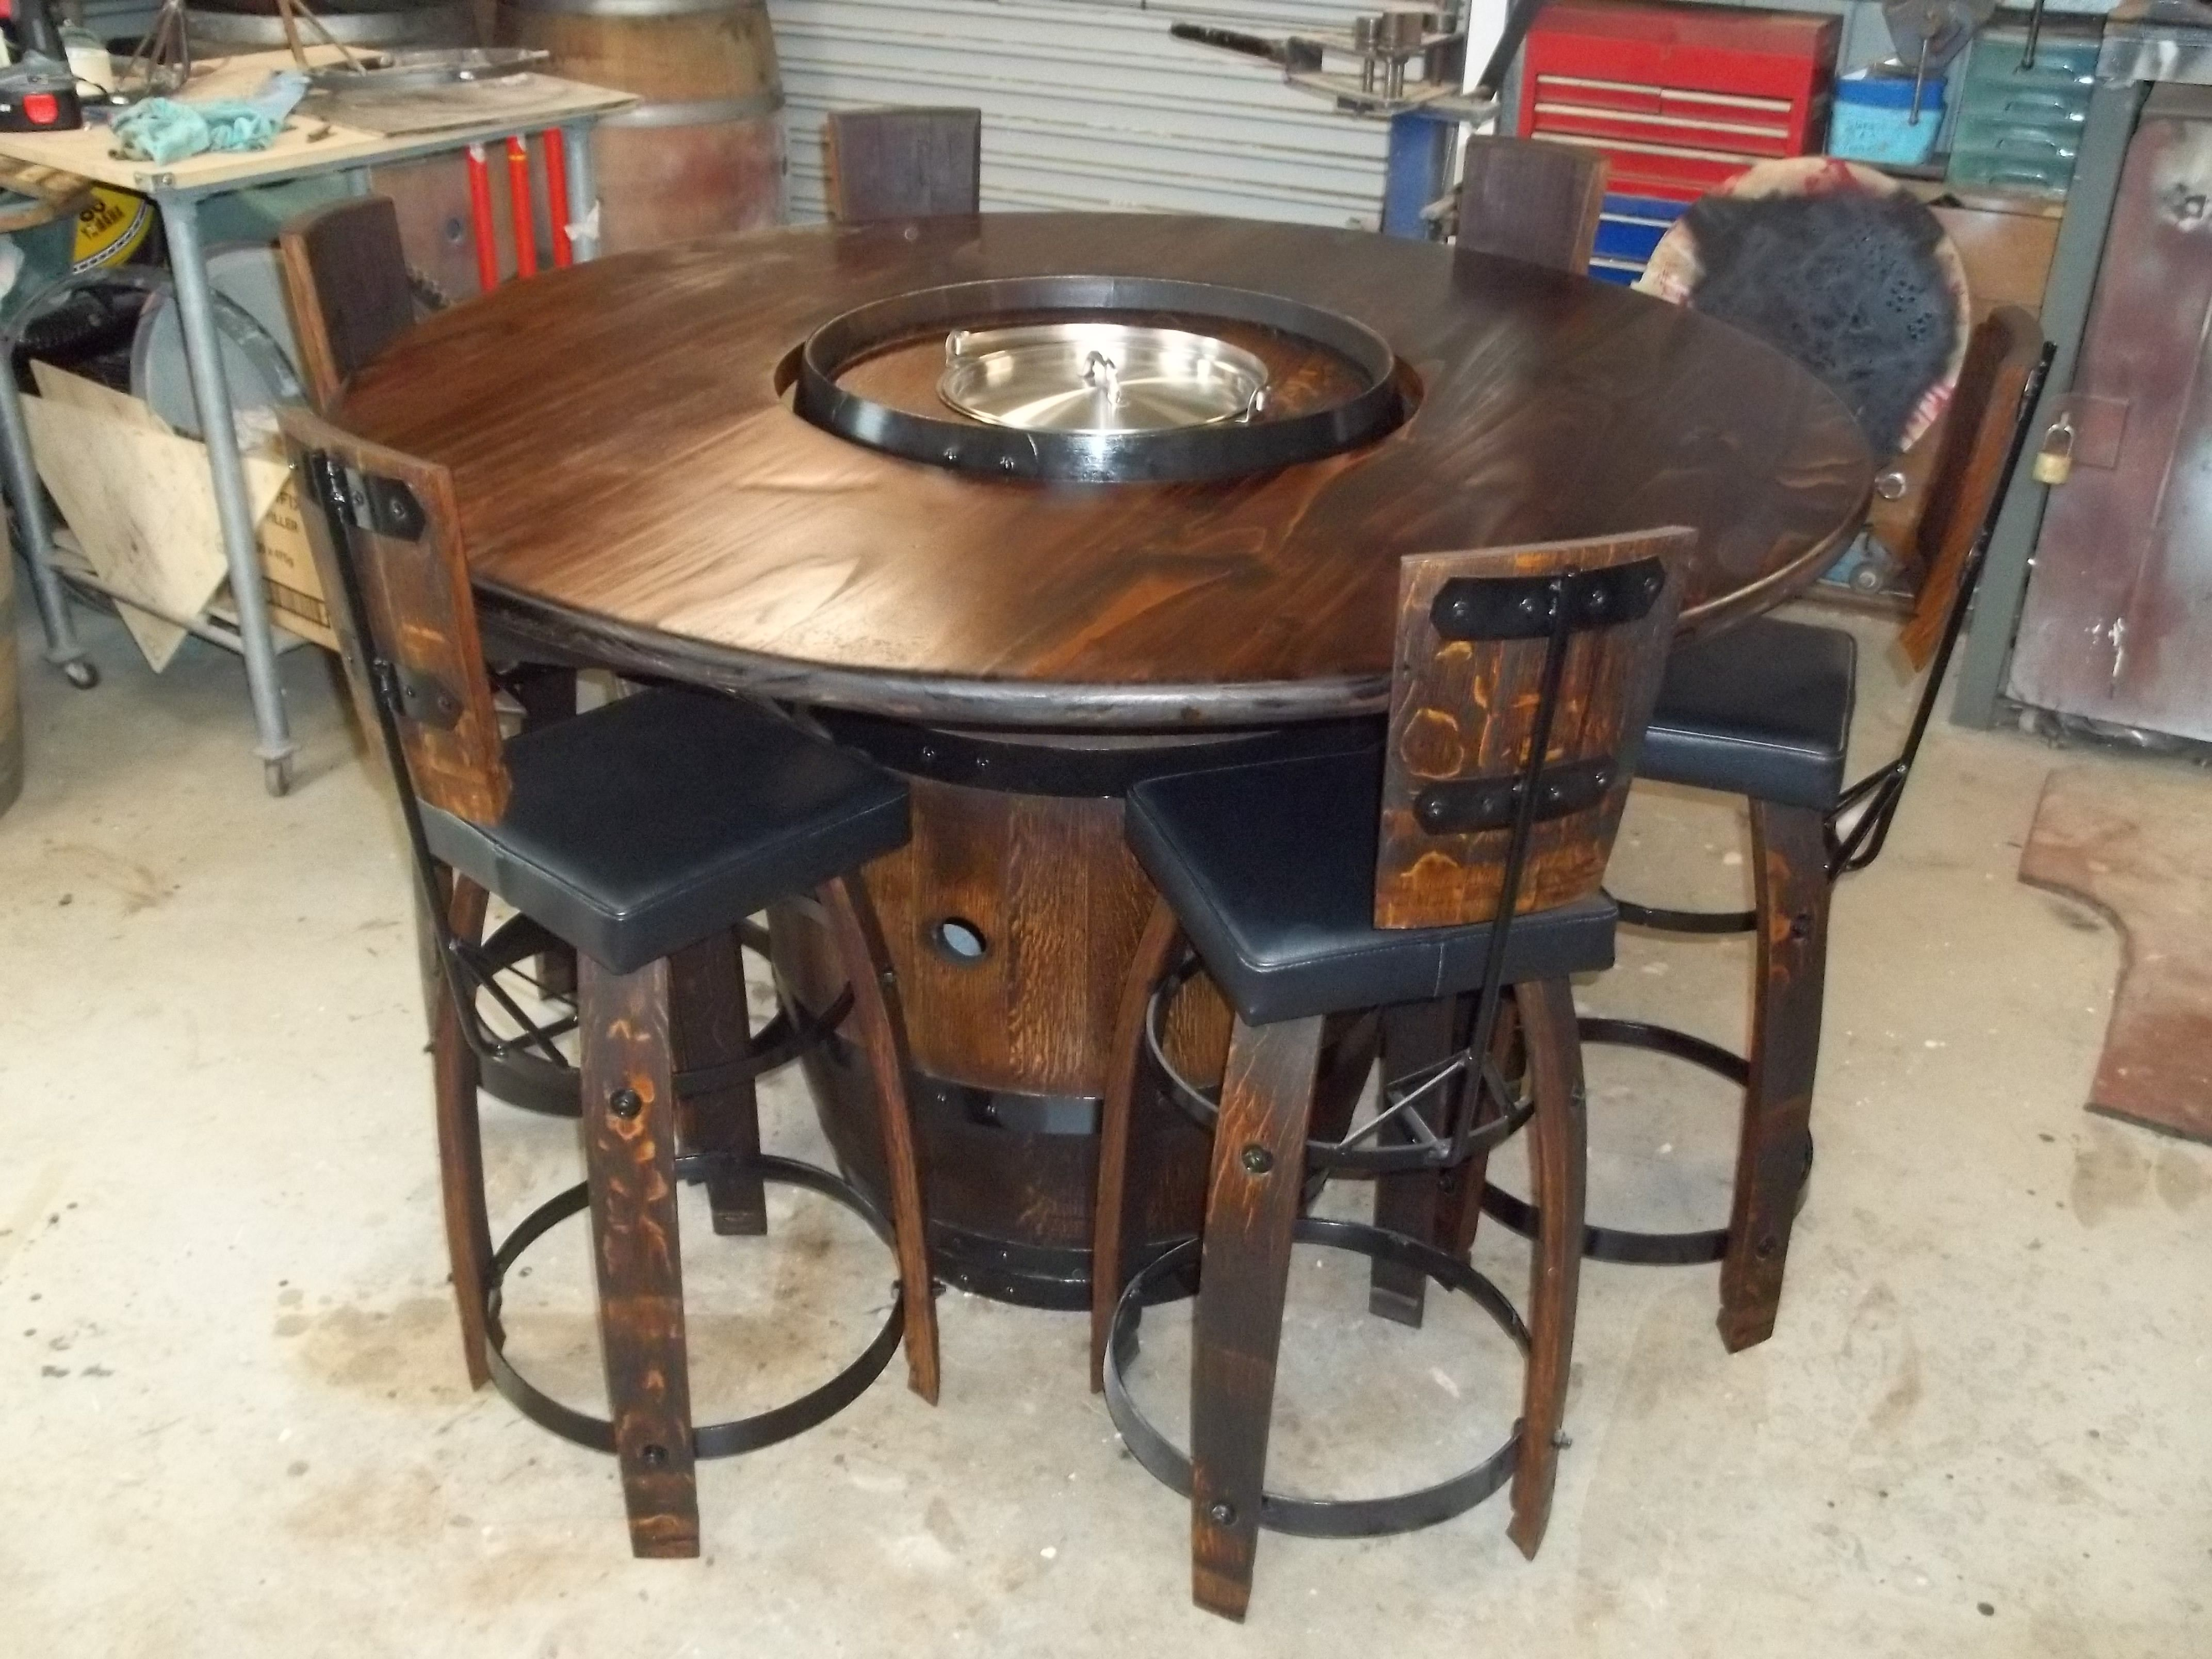 Wine Barrel Bistro Table With A Ice Bucket Cut Into The Barrel. Table Top On Part 81